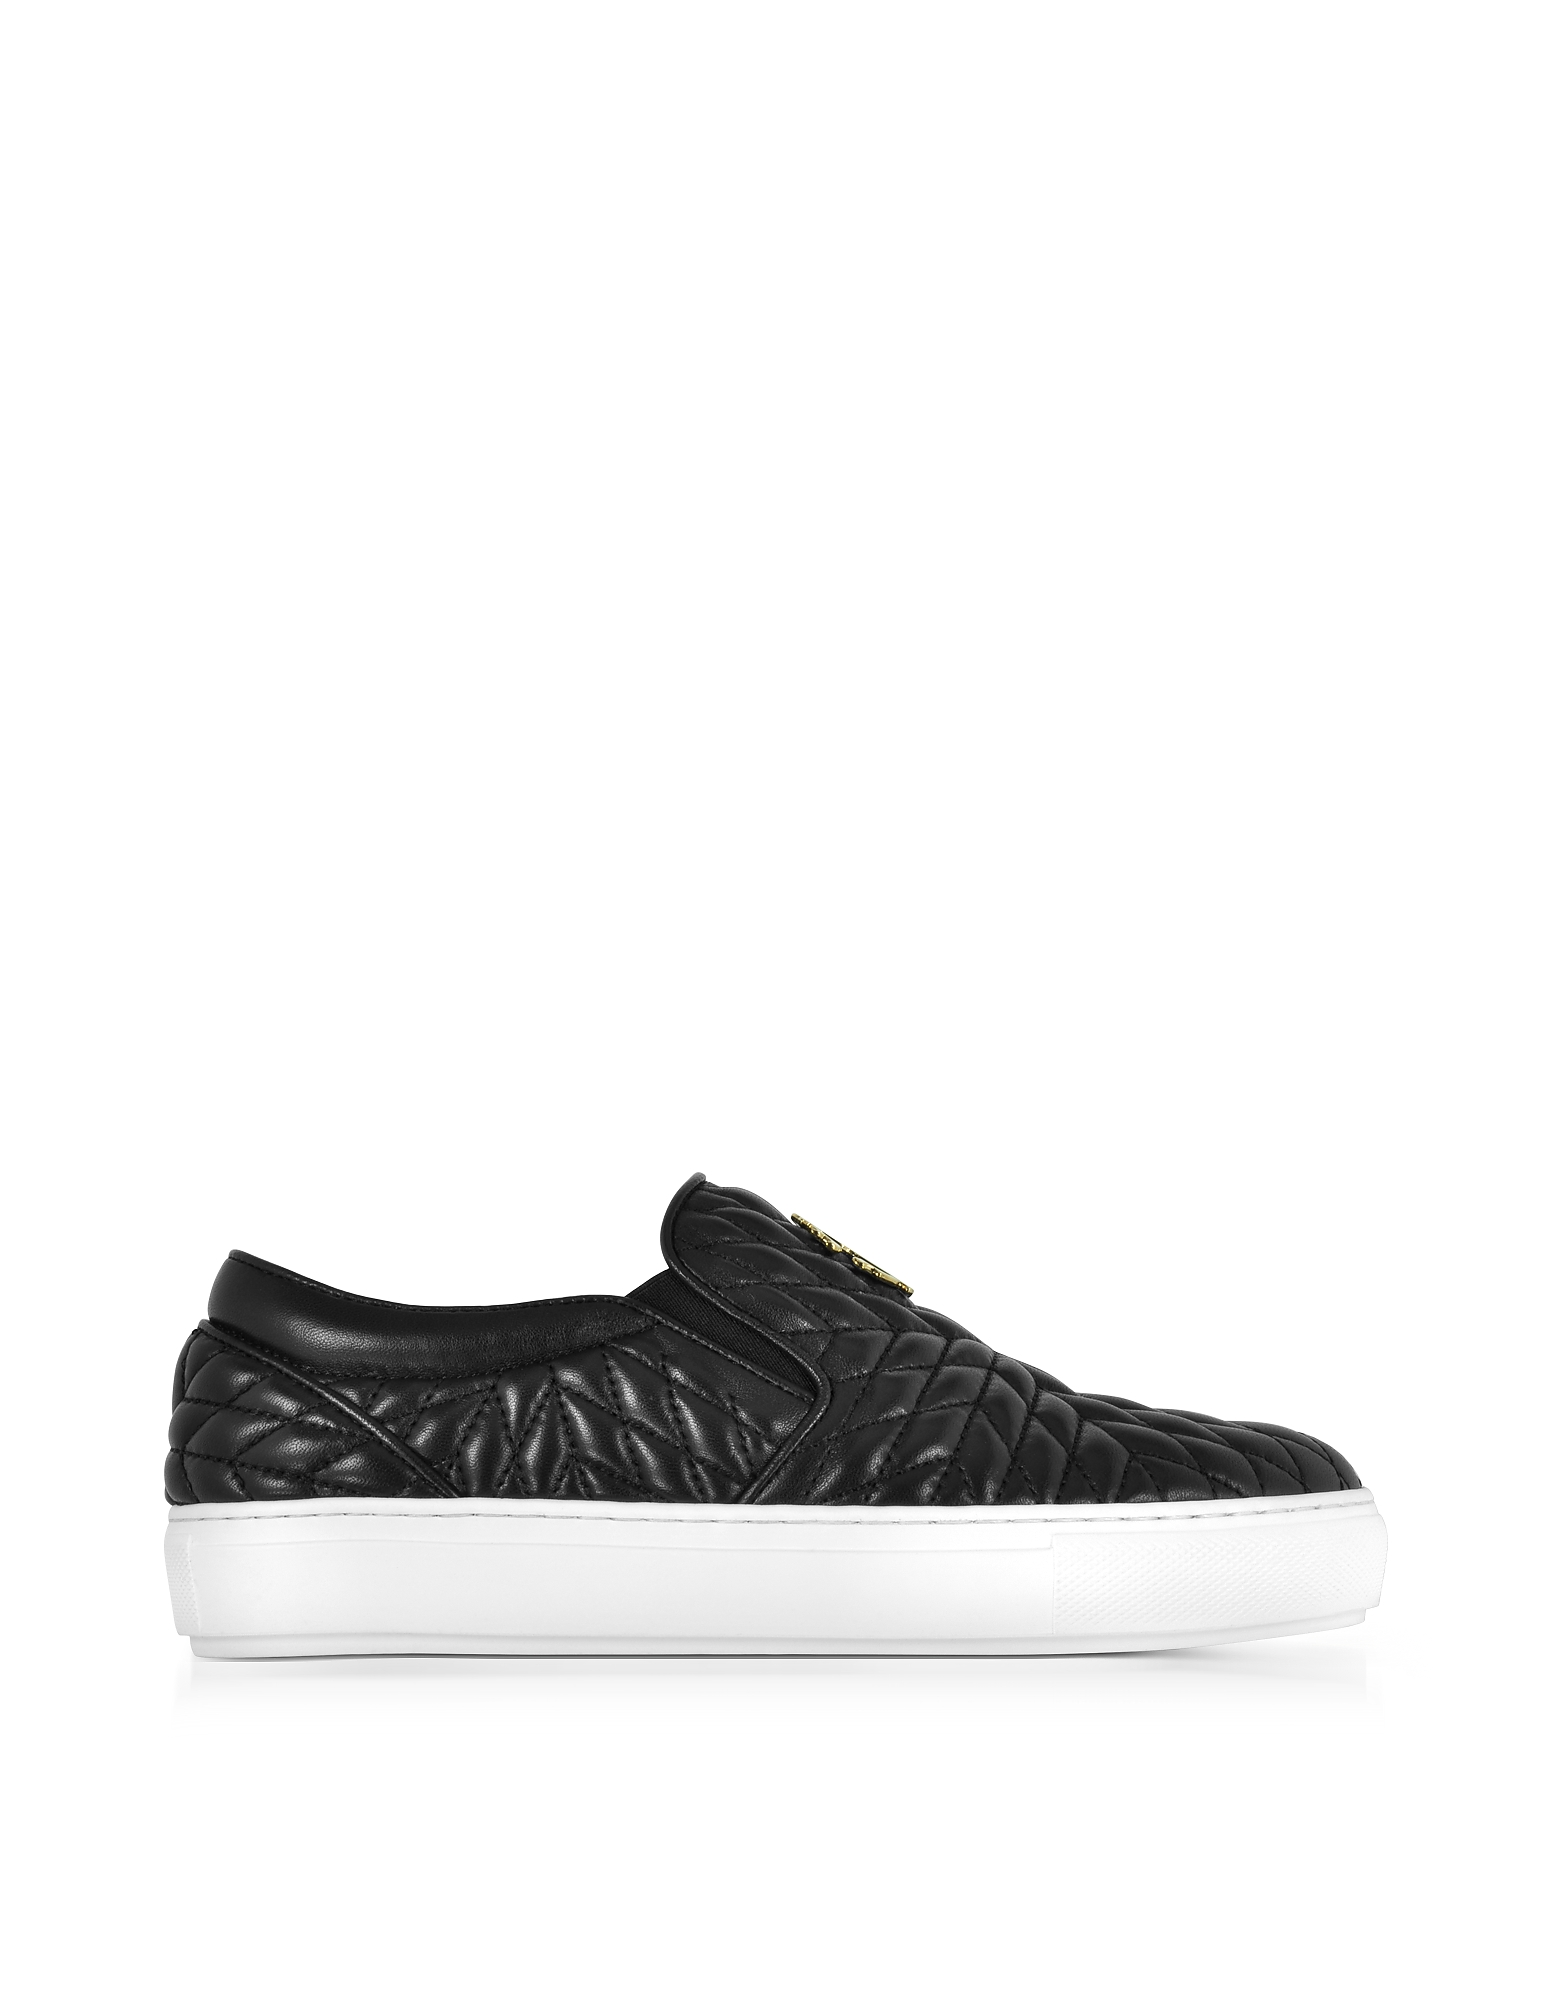 Roberto Cavalli Shoes, Black Nappa Star Quilted Leather Slip On Sneakers